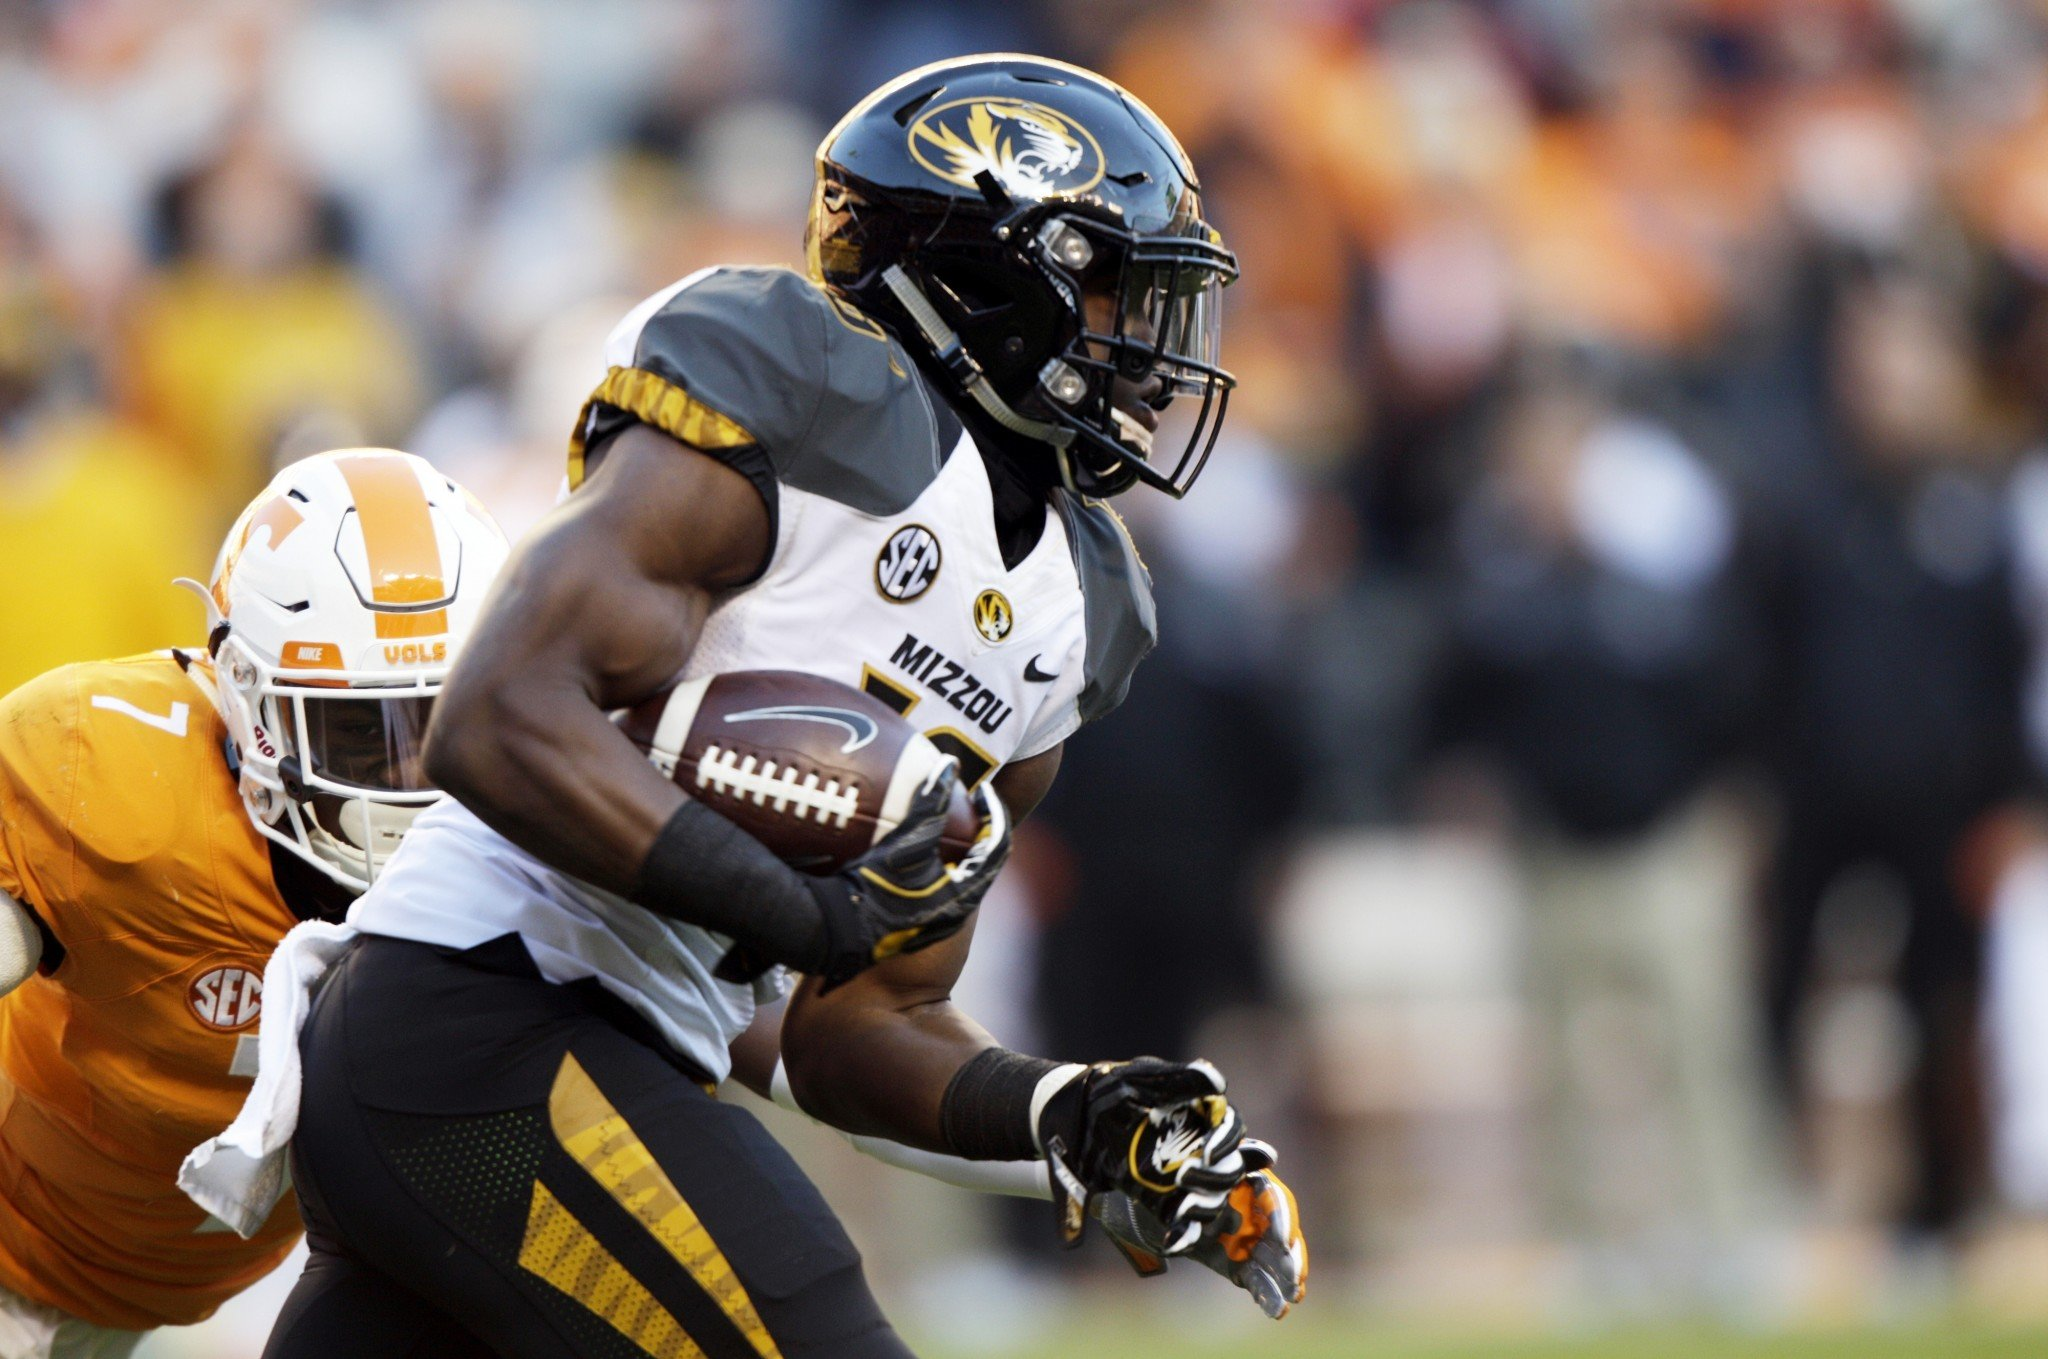 Missouri running back Damarea Crockett rushed for 225 yards against Tennessee. (AP Photo/Wade Payne)